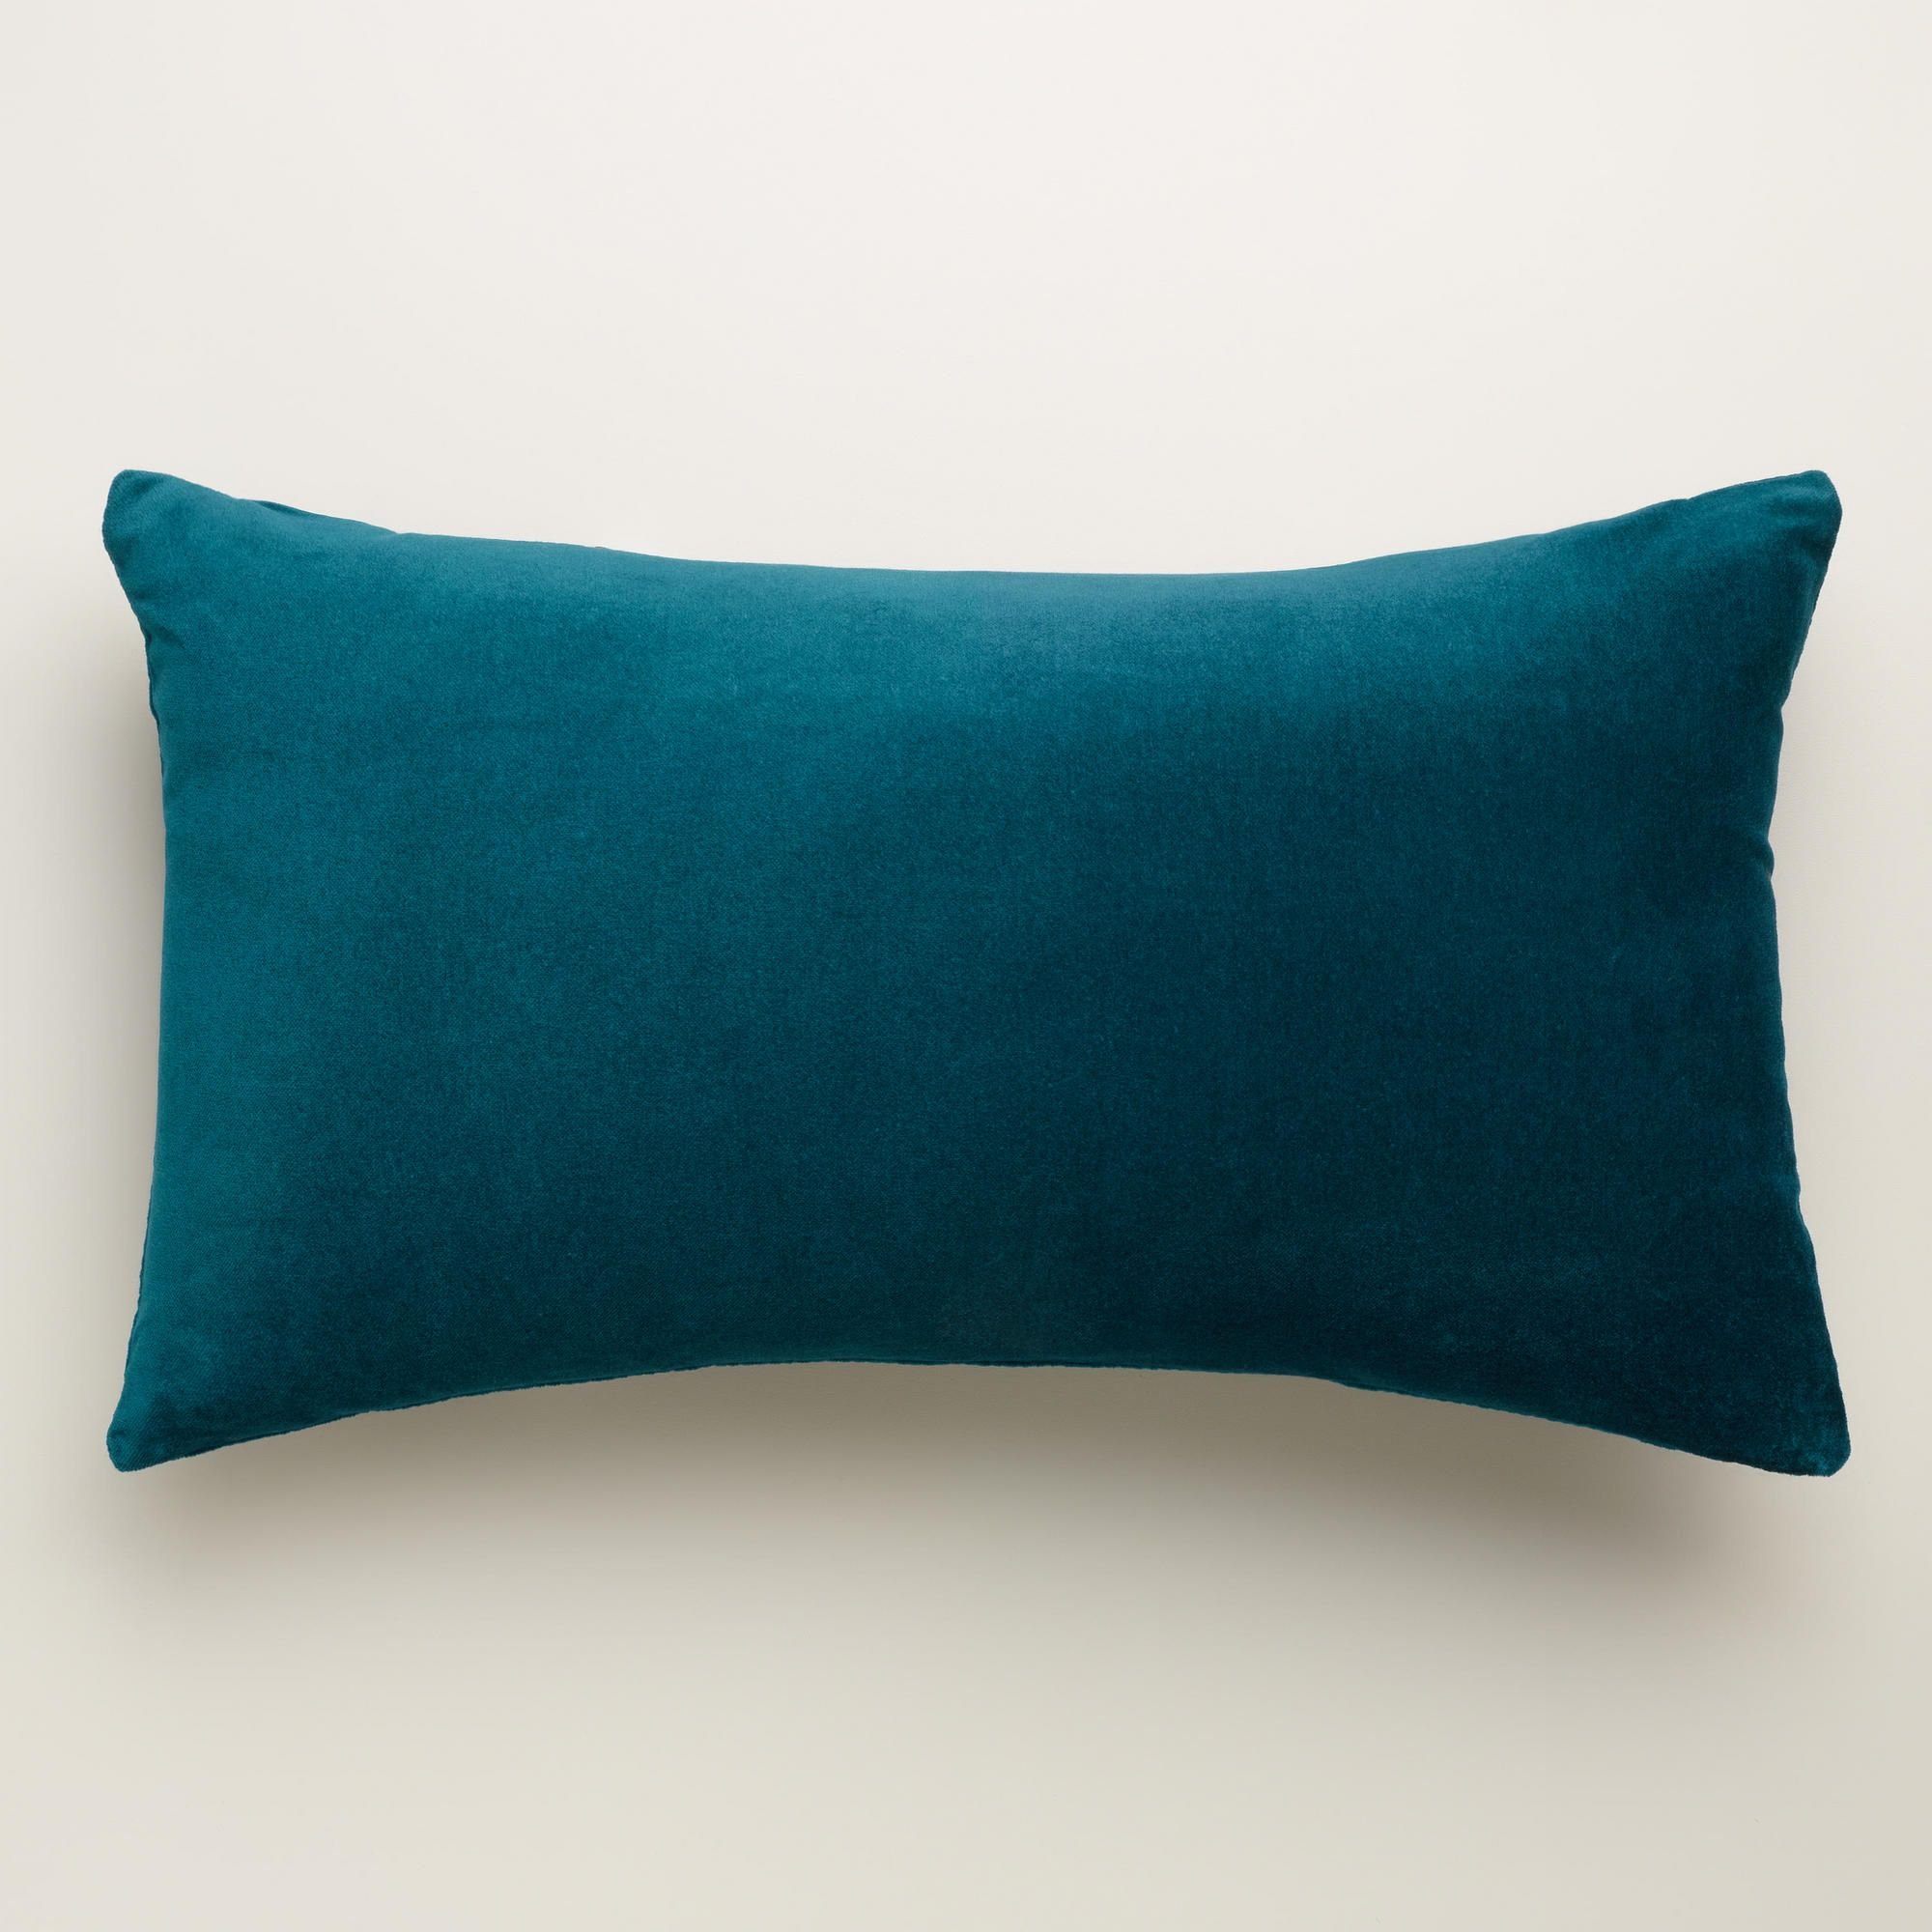 Just Bought This Today Love The Color Teal Velvet